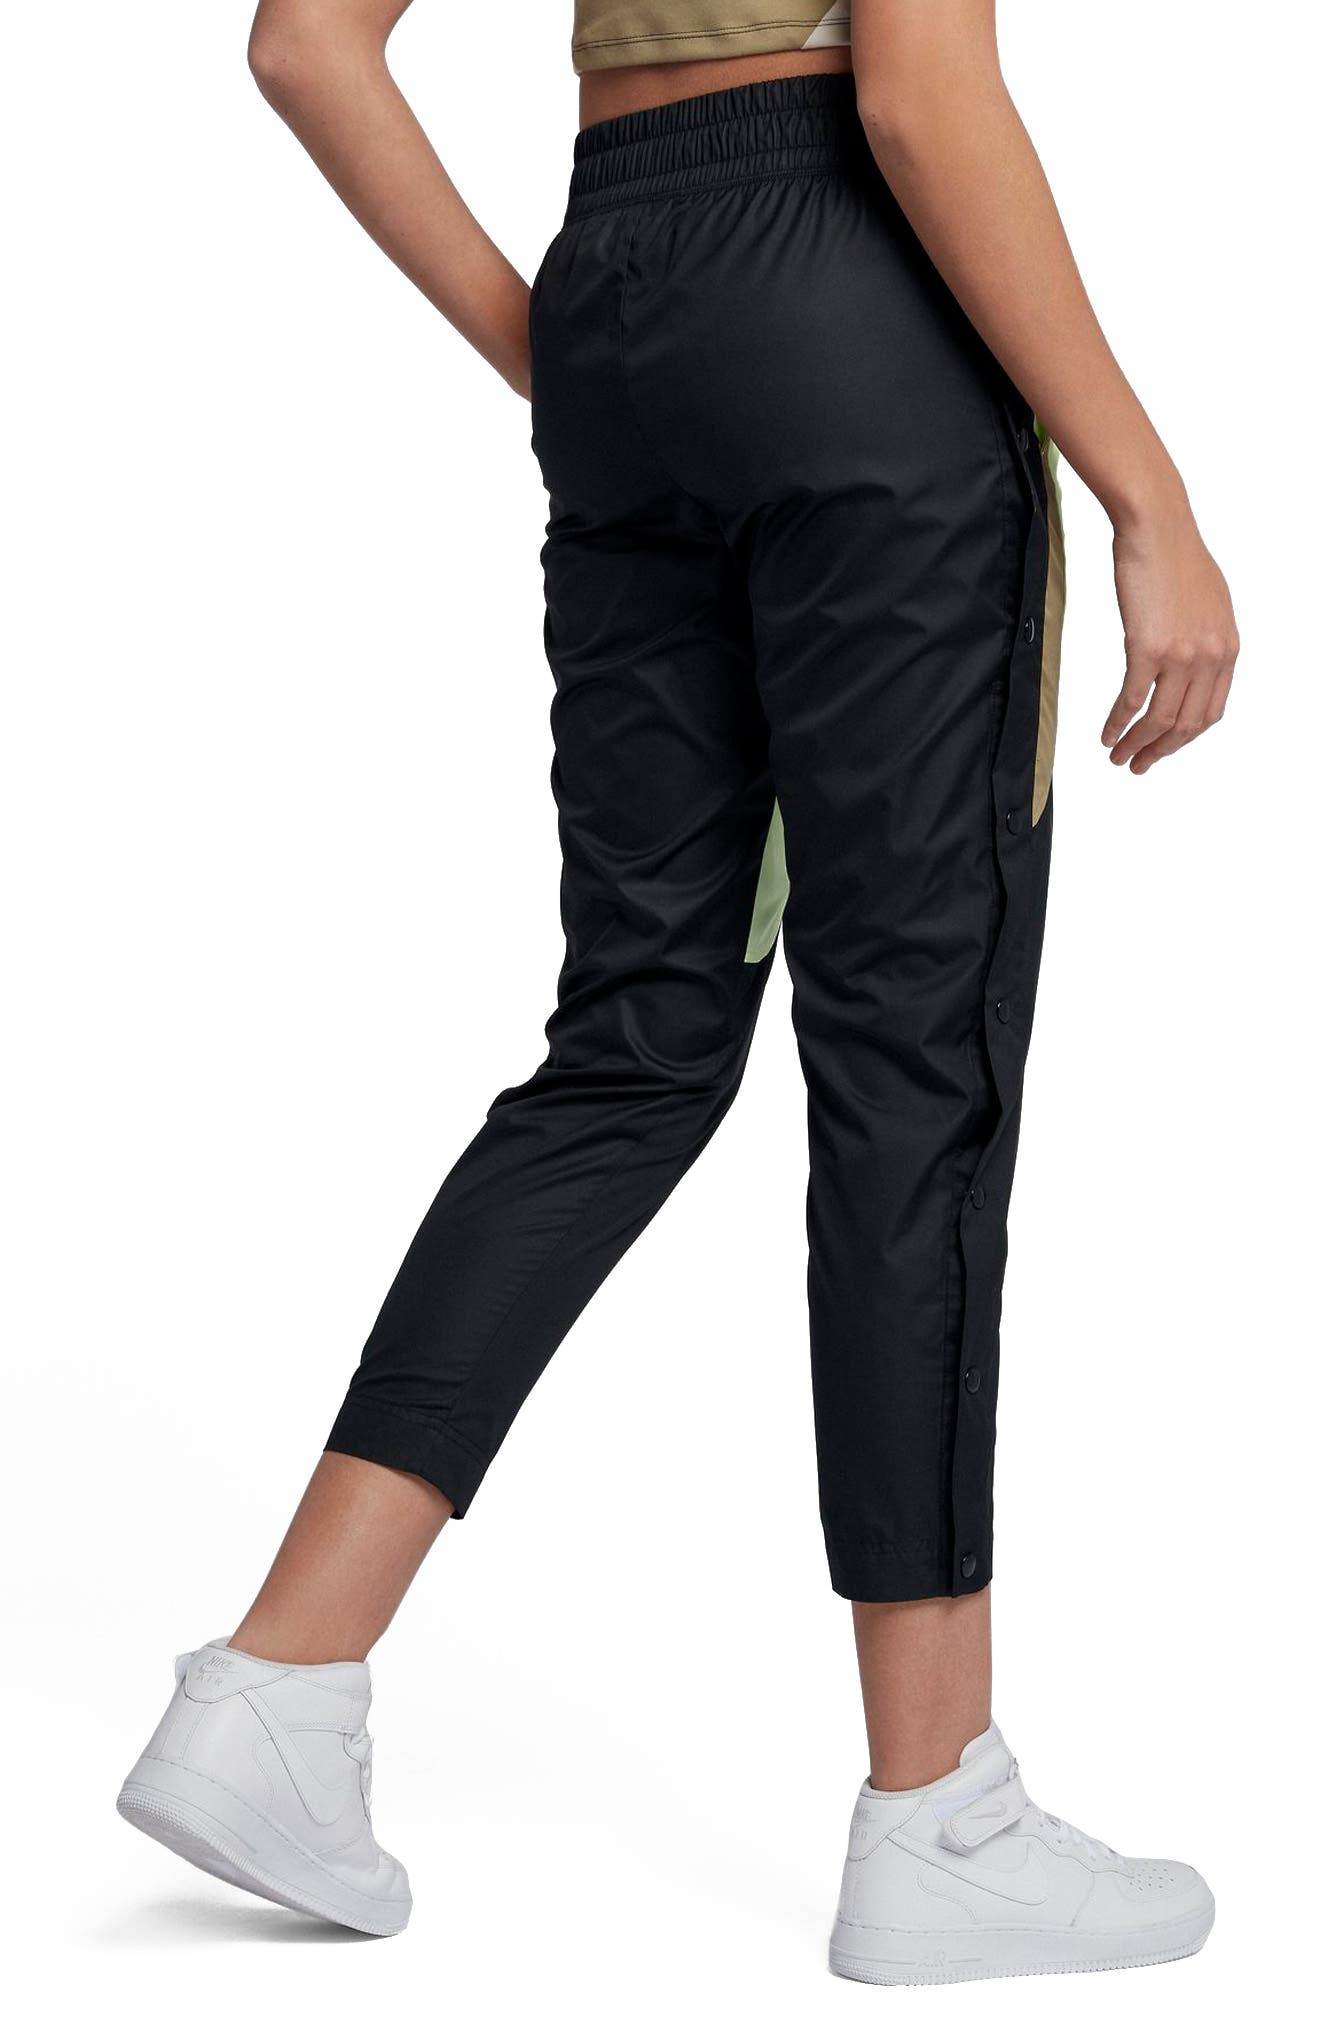 Sportswear Tearaway Woven Pants,                             Alternate thumbnail 2, color,                             010